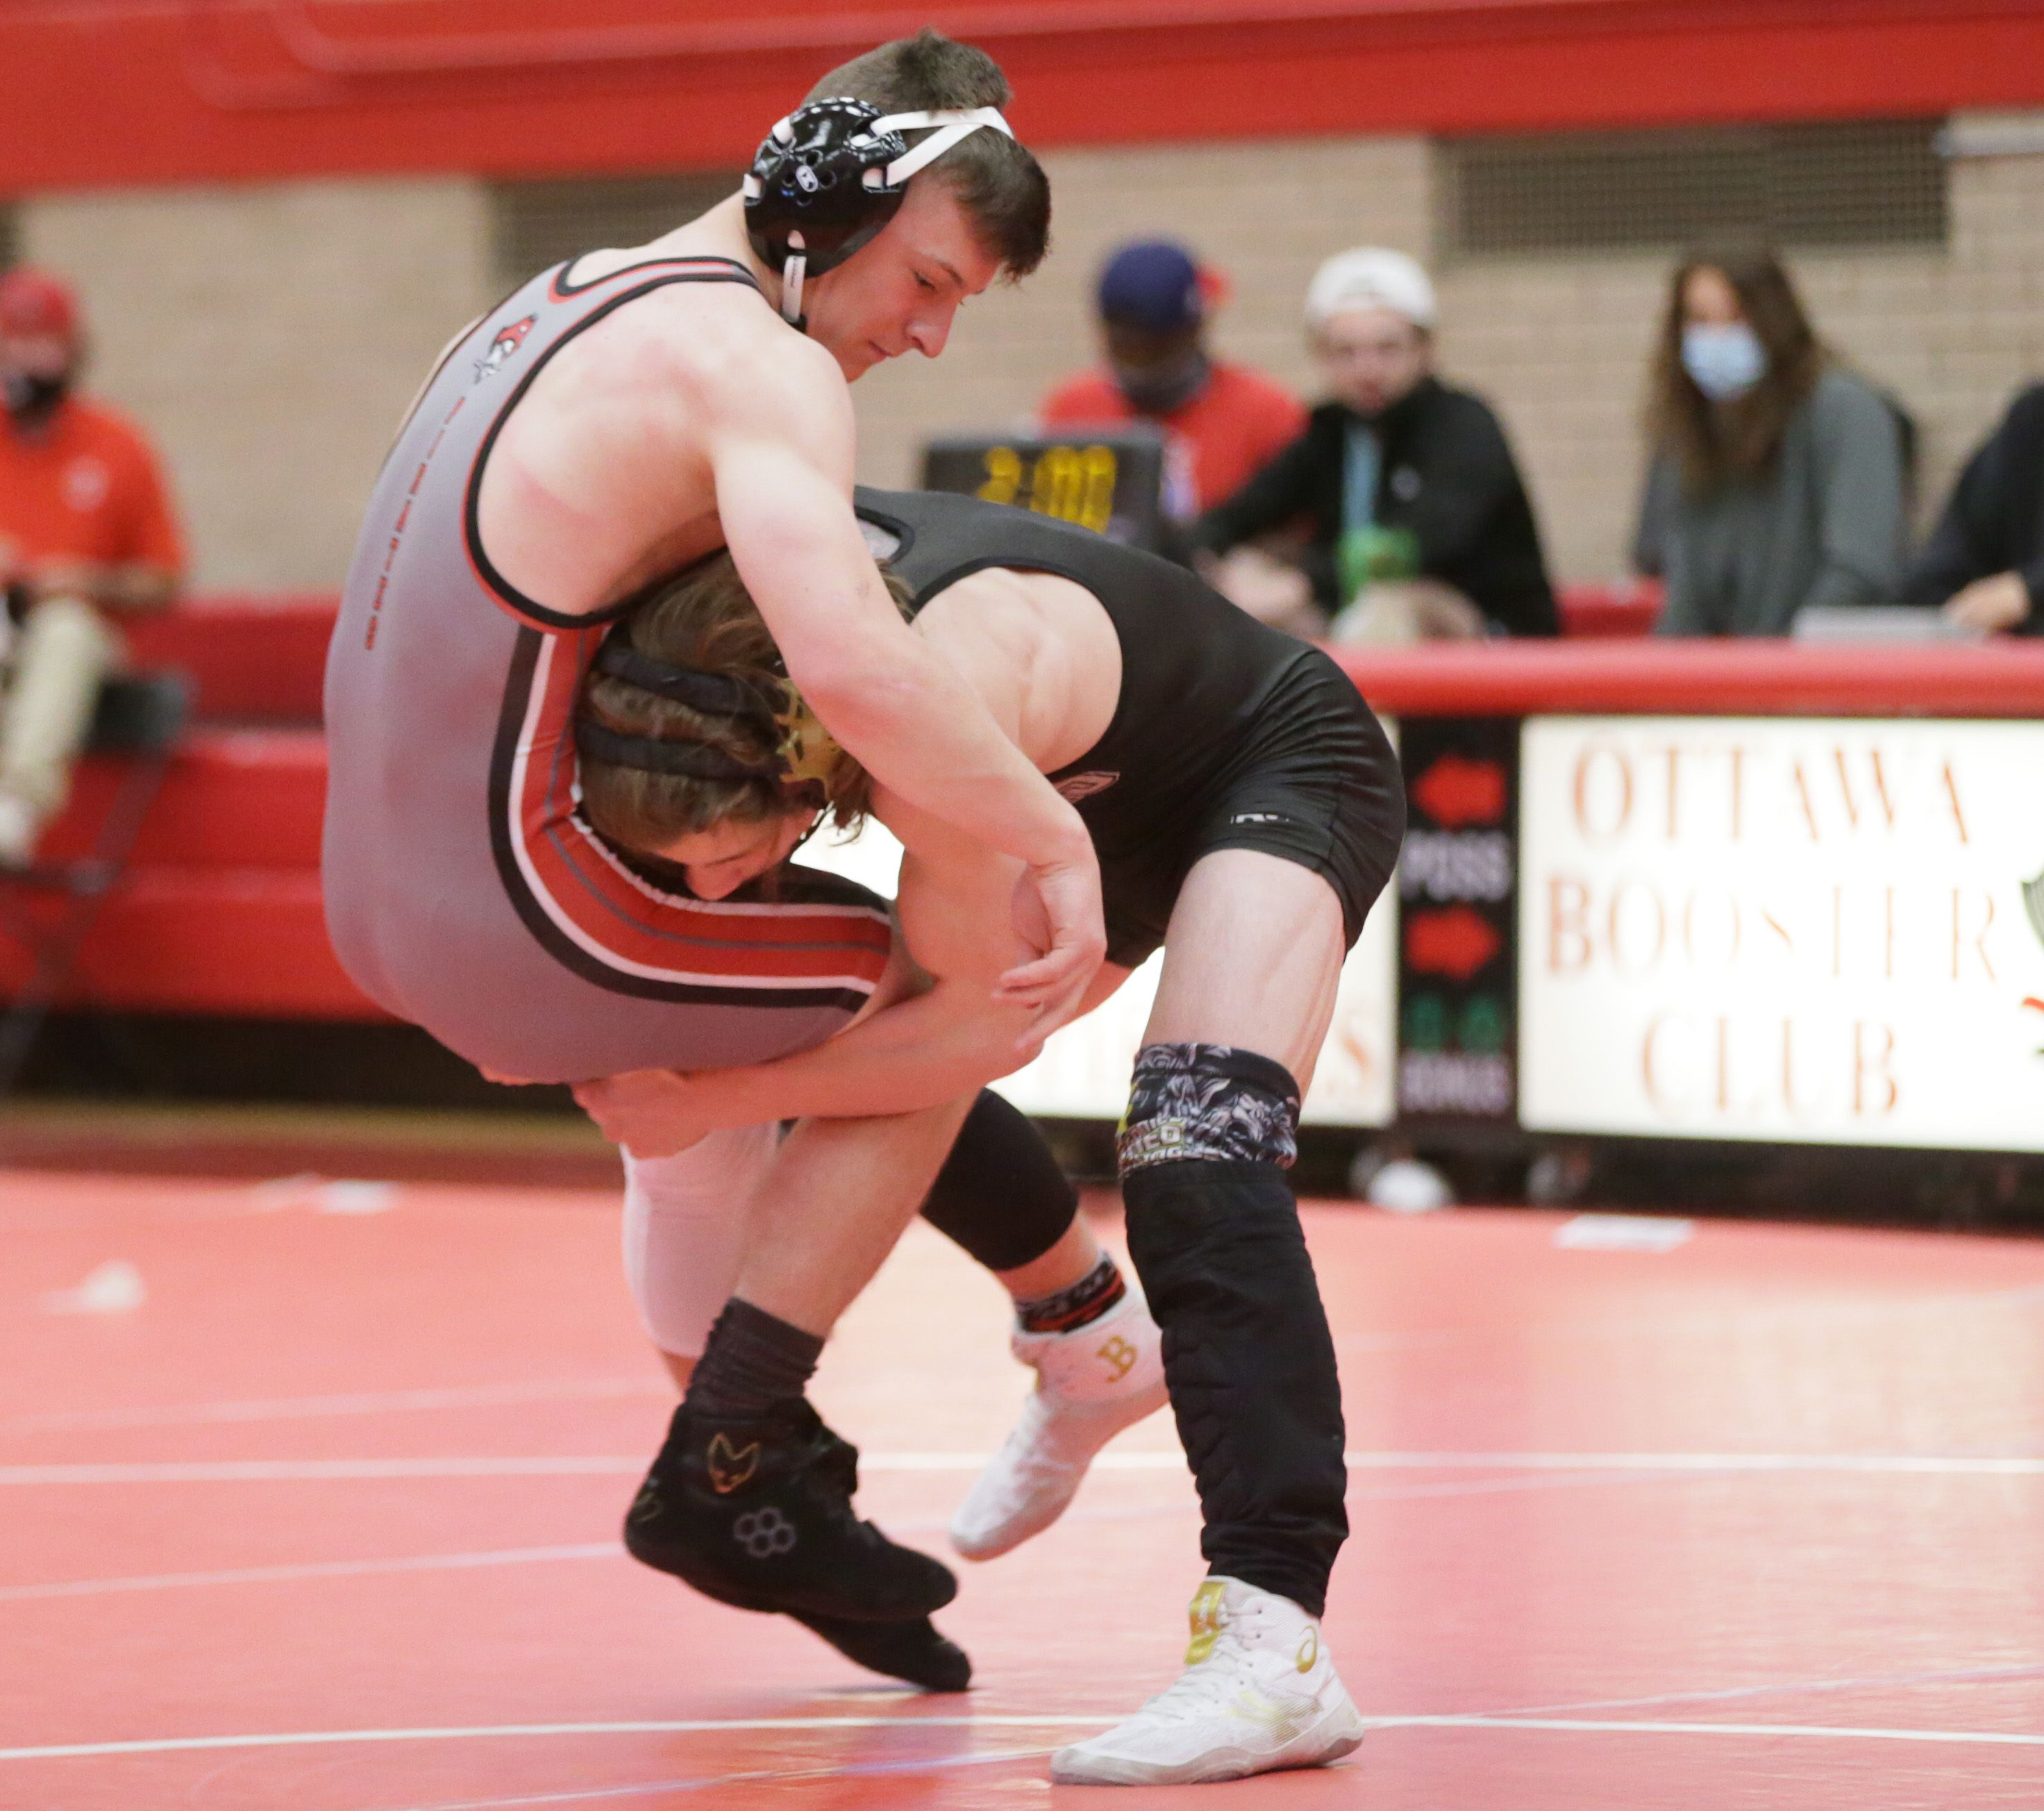 Sycamore's Brayden Peet lifts Ottawa's Hunter Wilson off his feet during a wrestling meet at Ottawa on Saturday May 1, 2021.